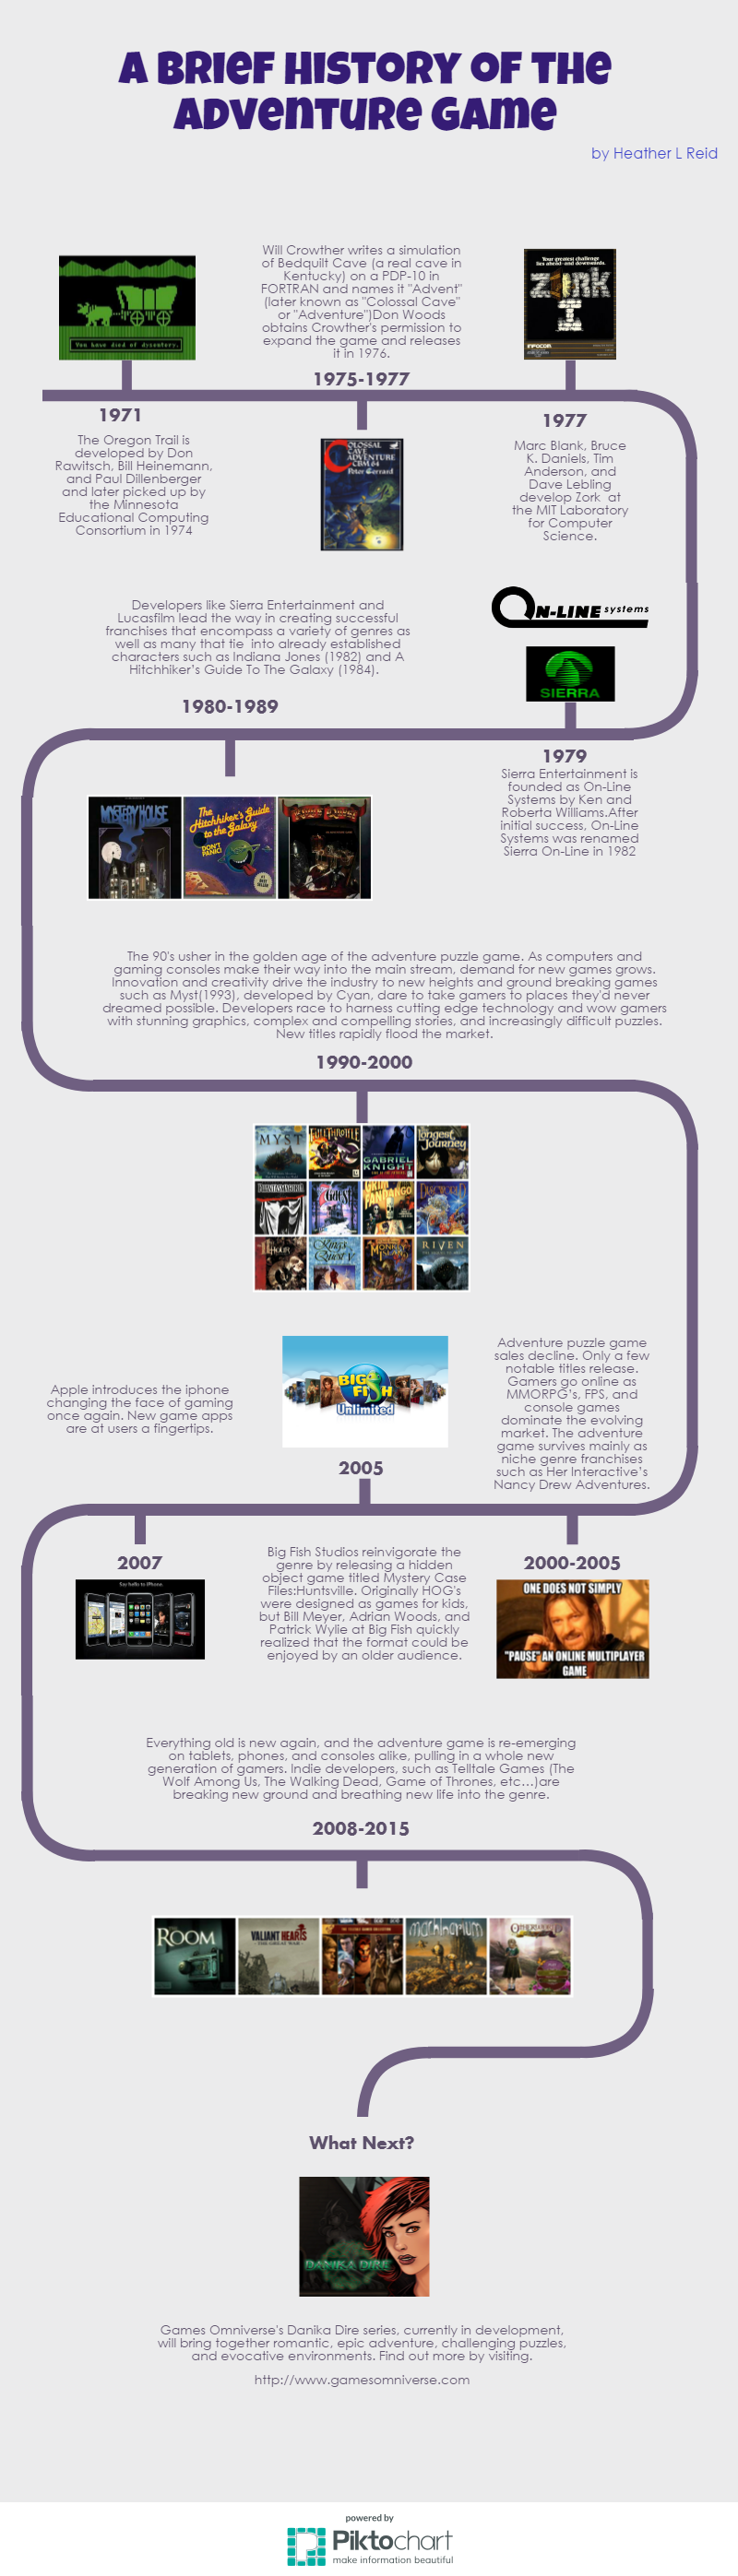 Heather_Reid-Infographic_for_A_Breif_History_of_the_Advenure_Game